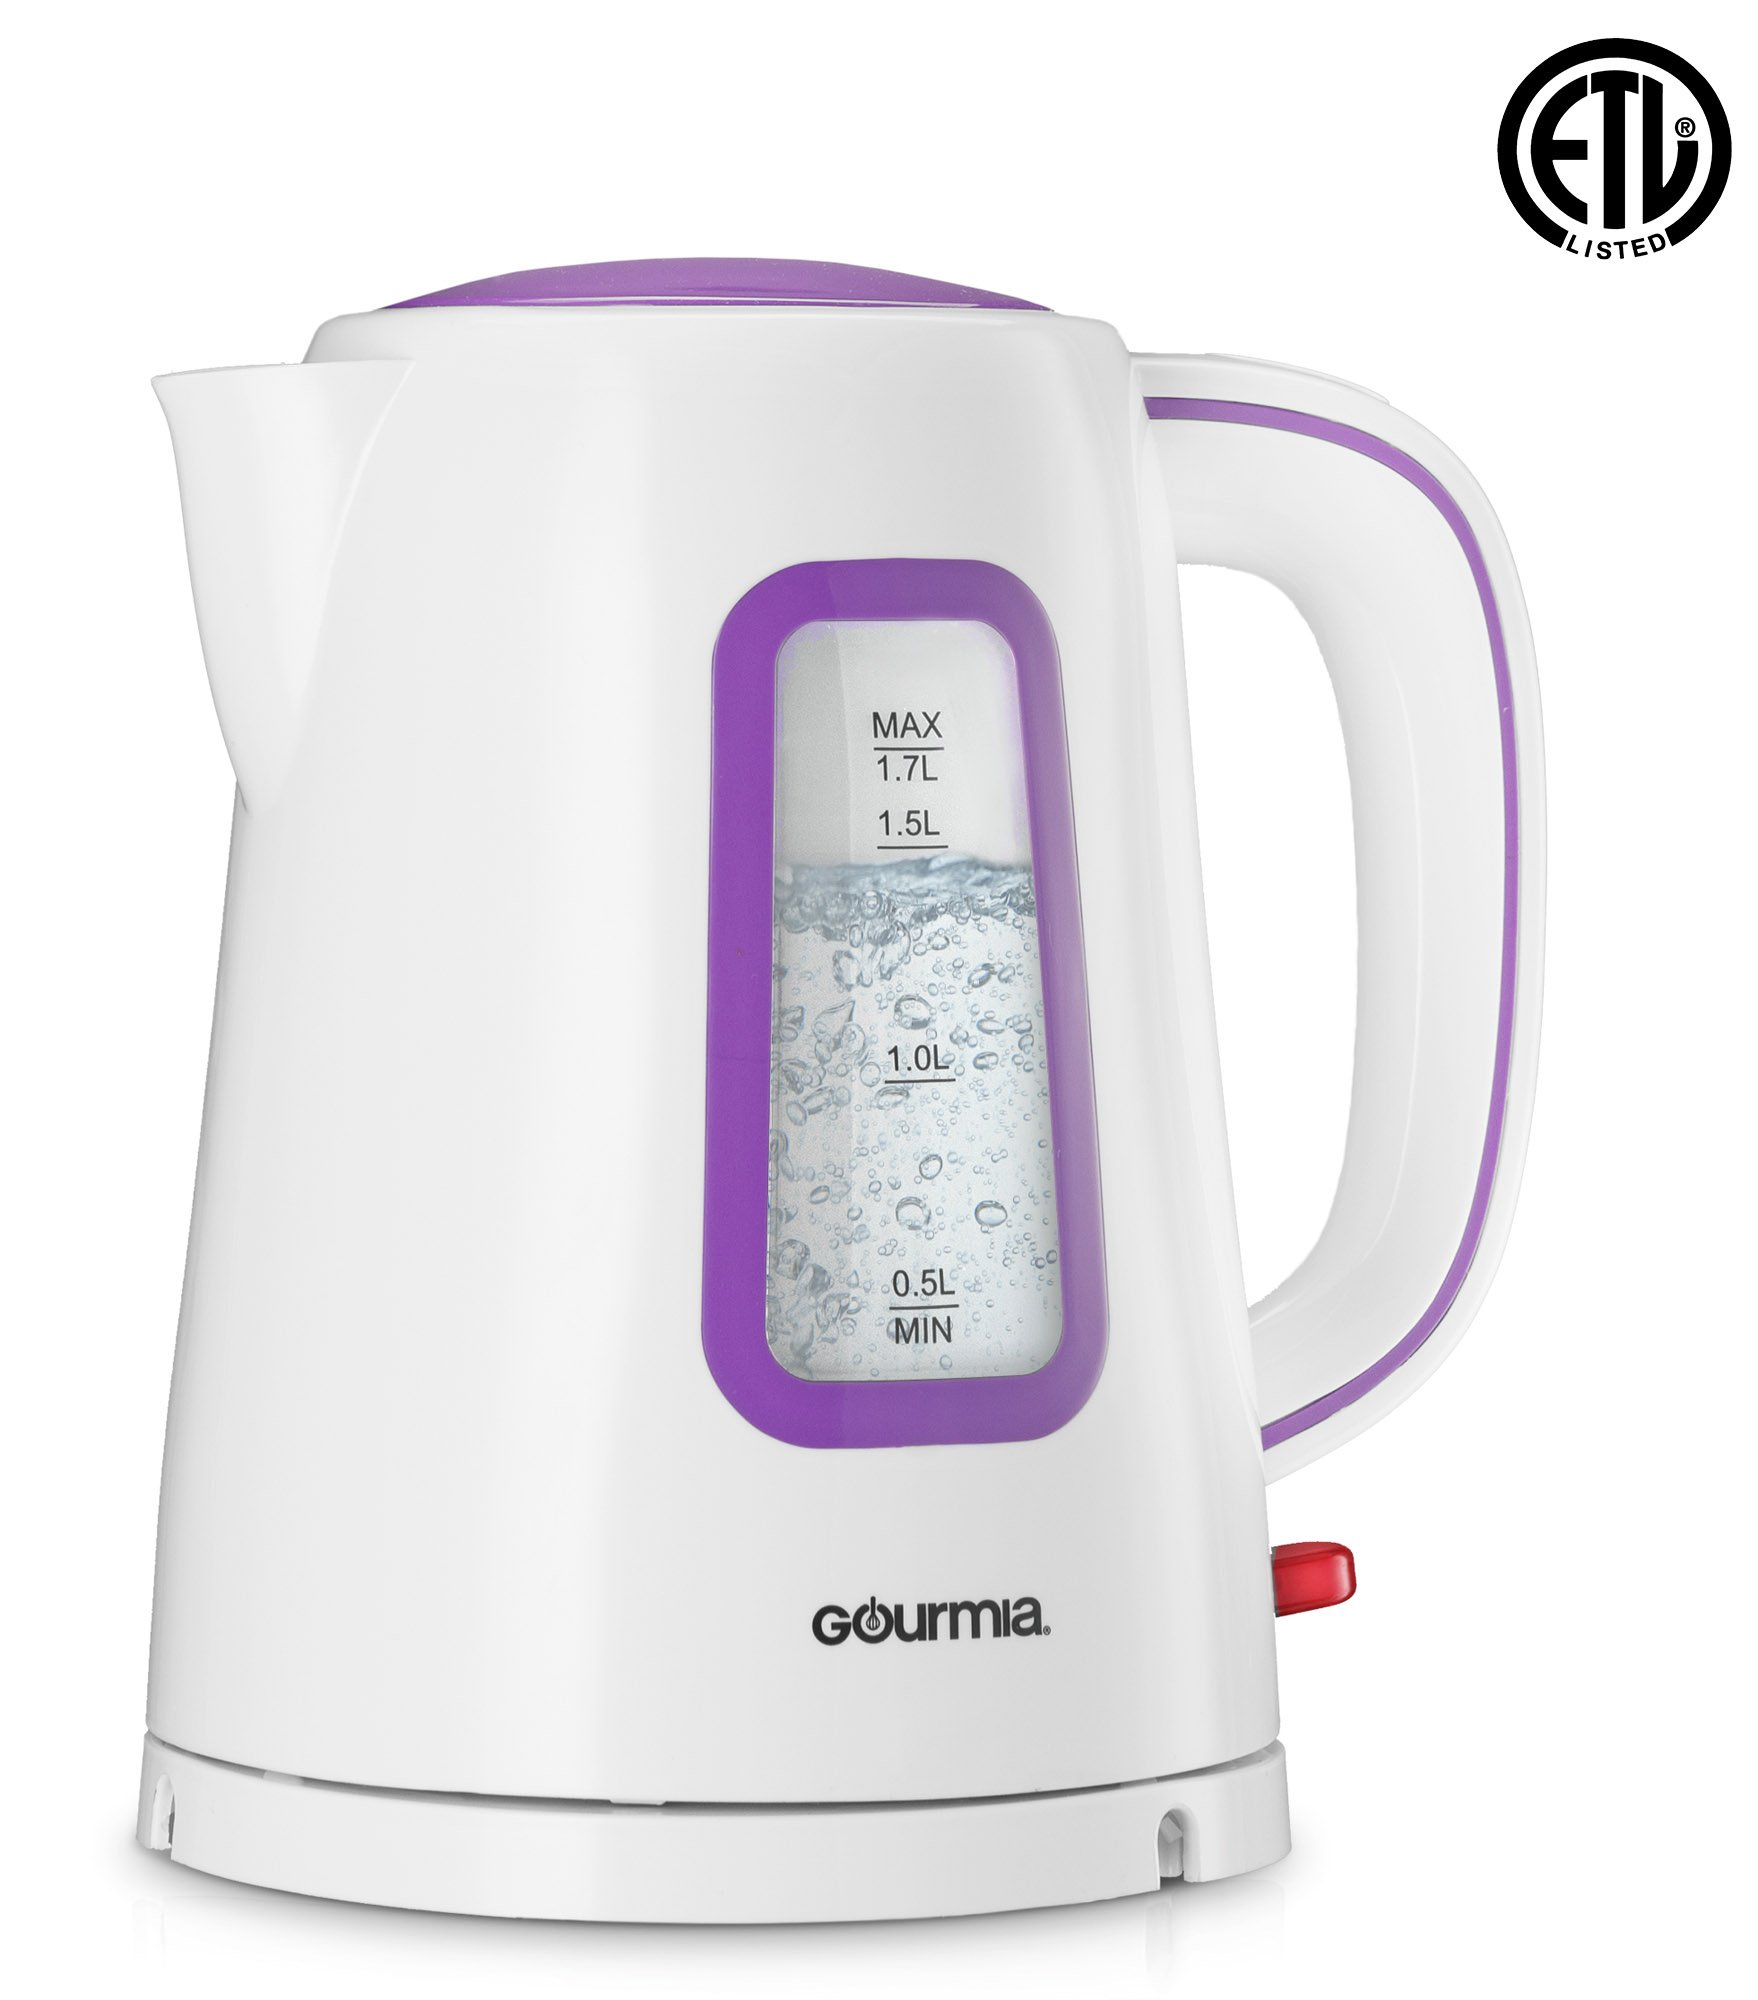 Gourmia GK220 Supreme Electric Tea Kettle - Cordless - Speed Boil - Auto Shutoff - Boil Dry Protection - Concealed Heating Element - 360° Swivel Base - 1.7L - 1500 Watts - 110/120V - White/Purple